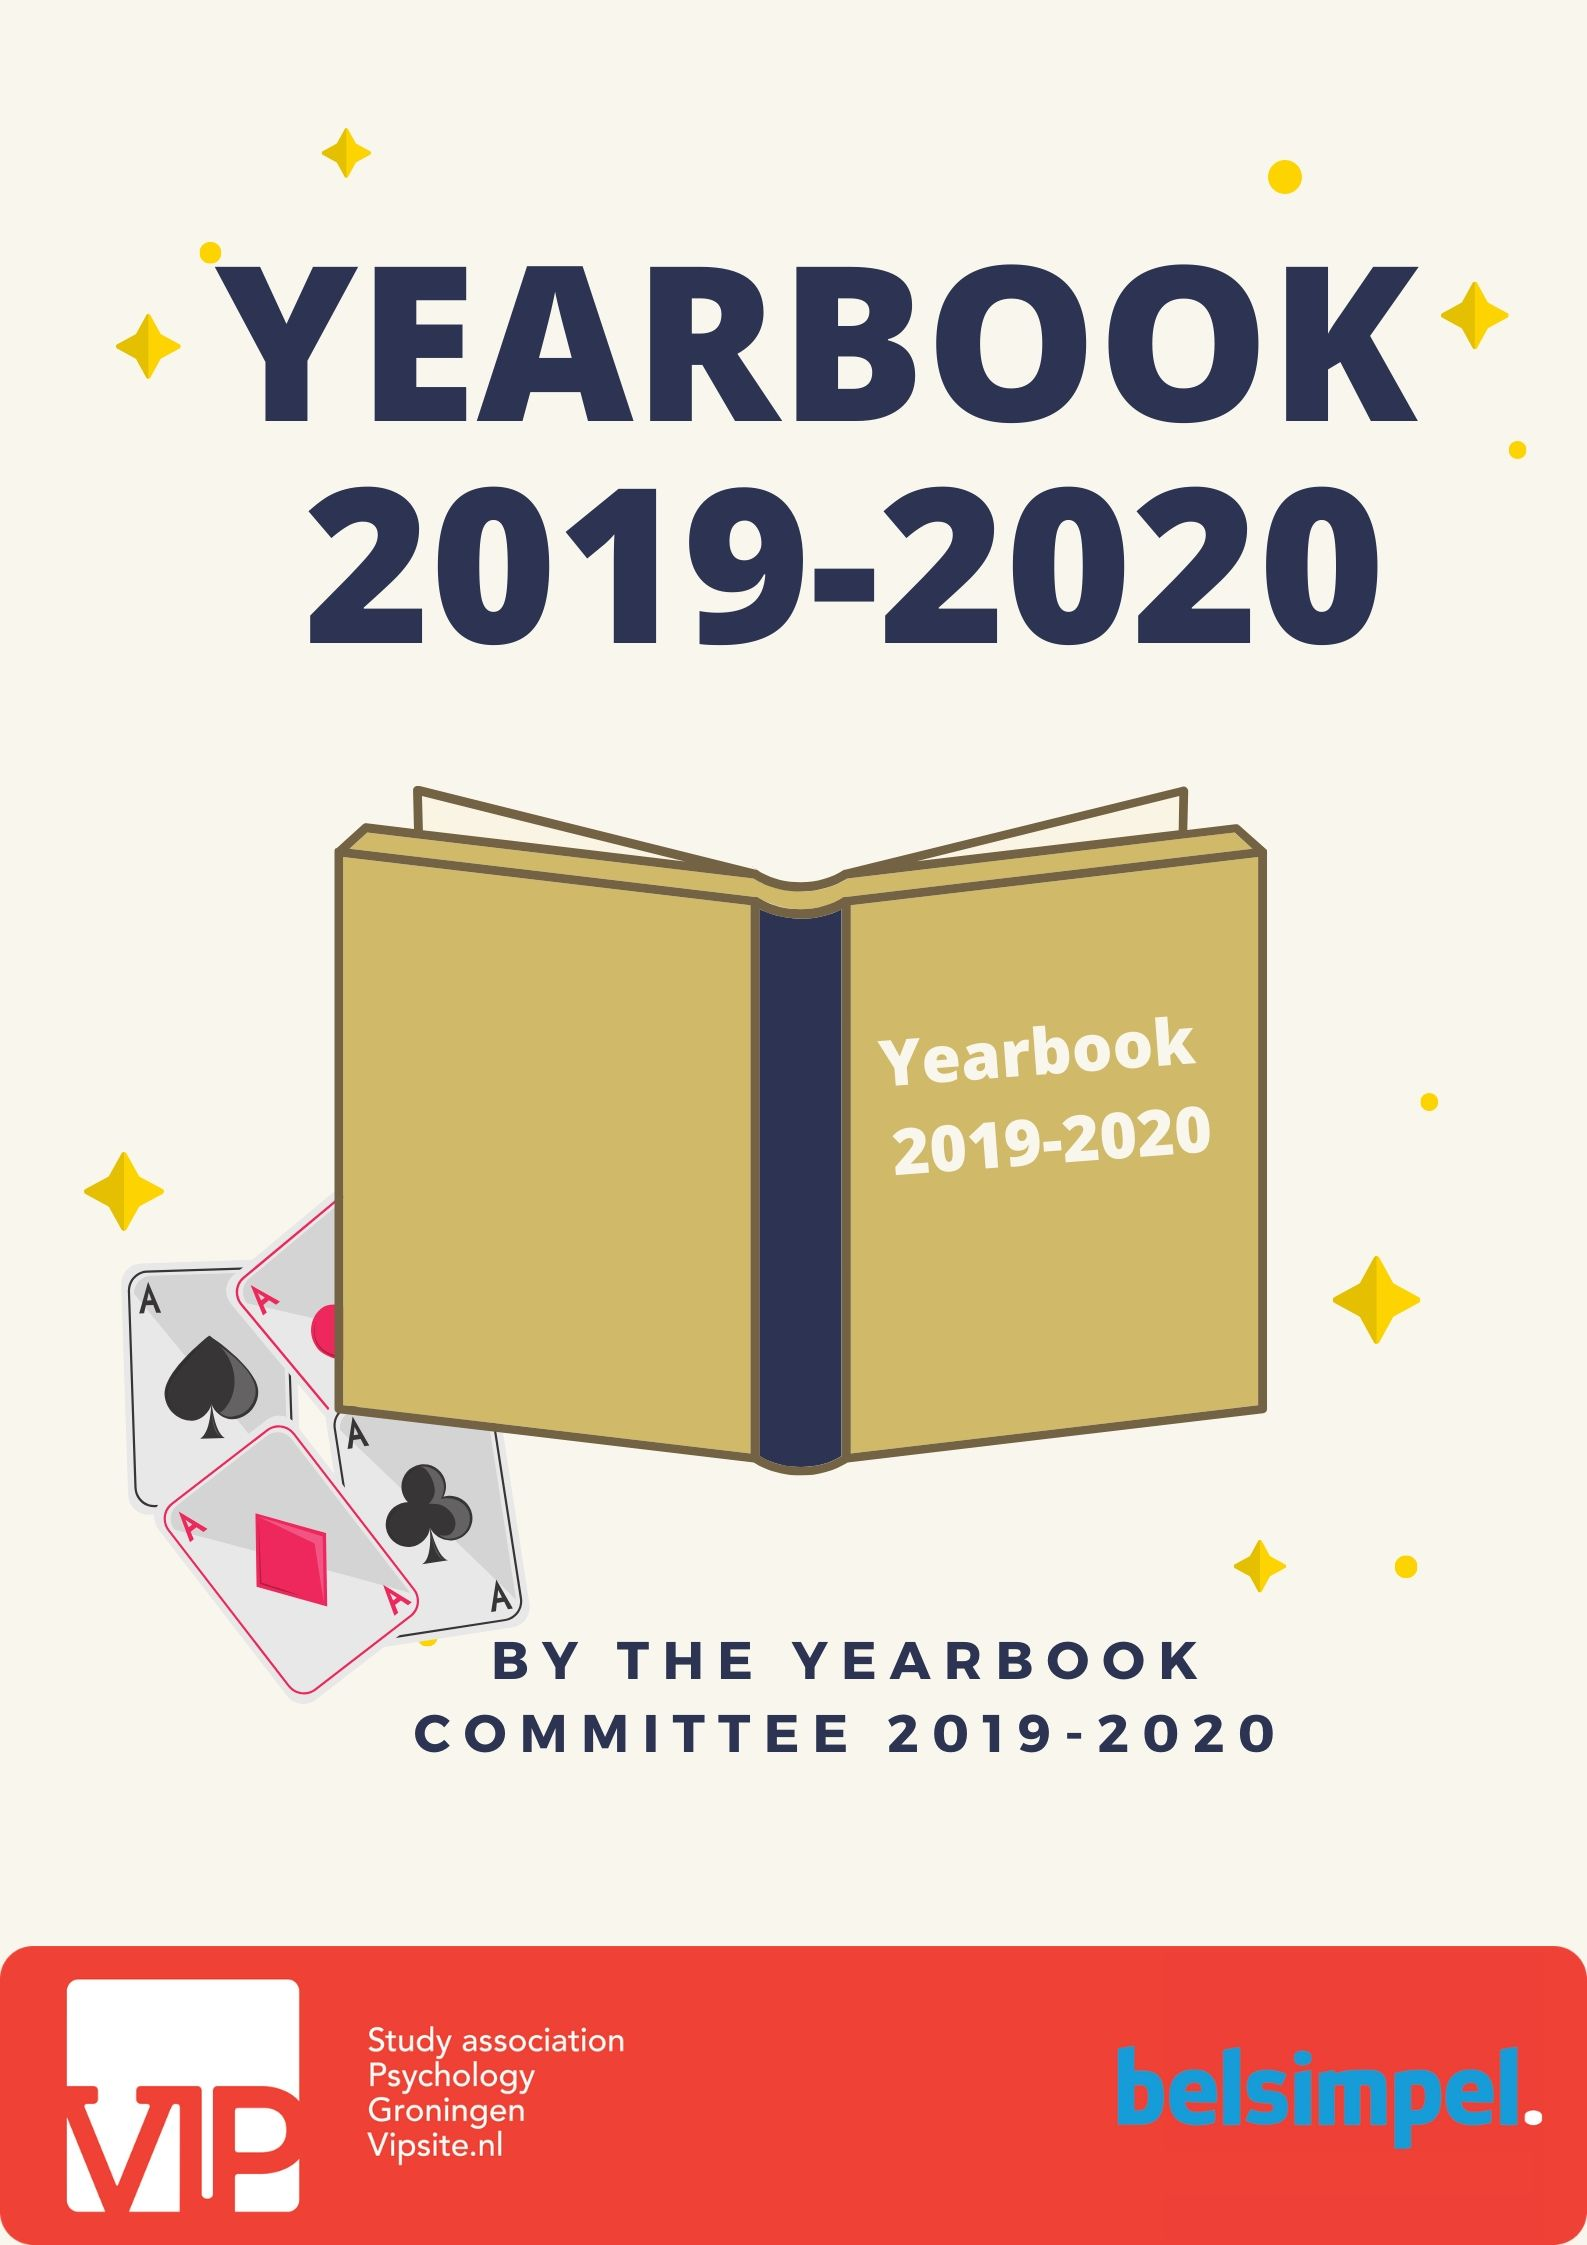 Reserve a Yearbook!